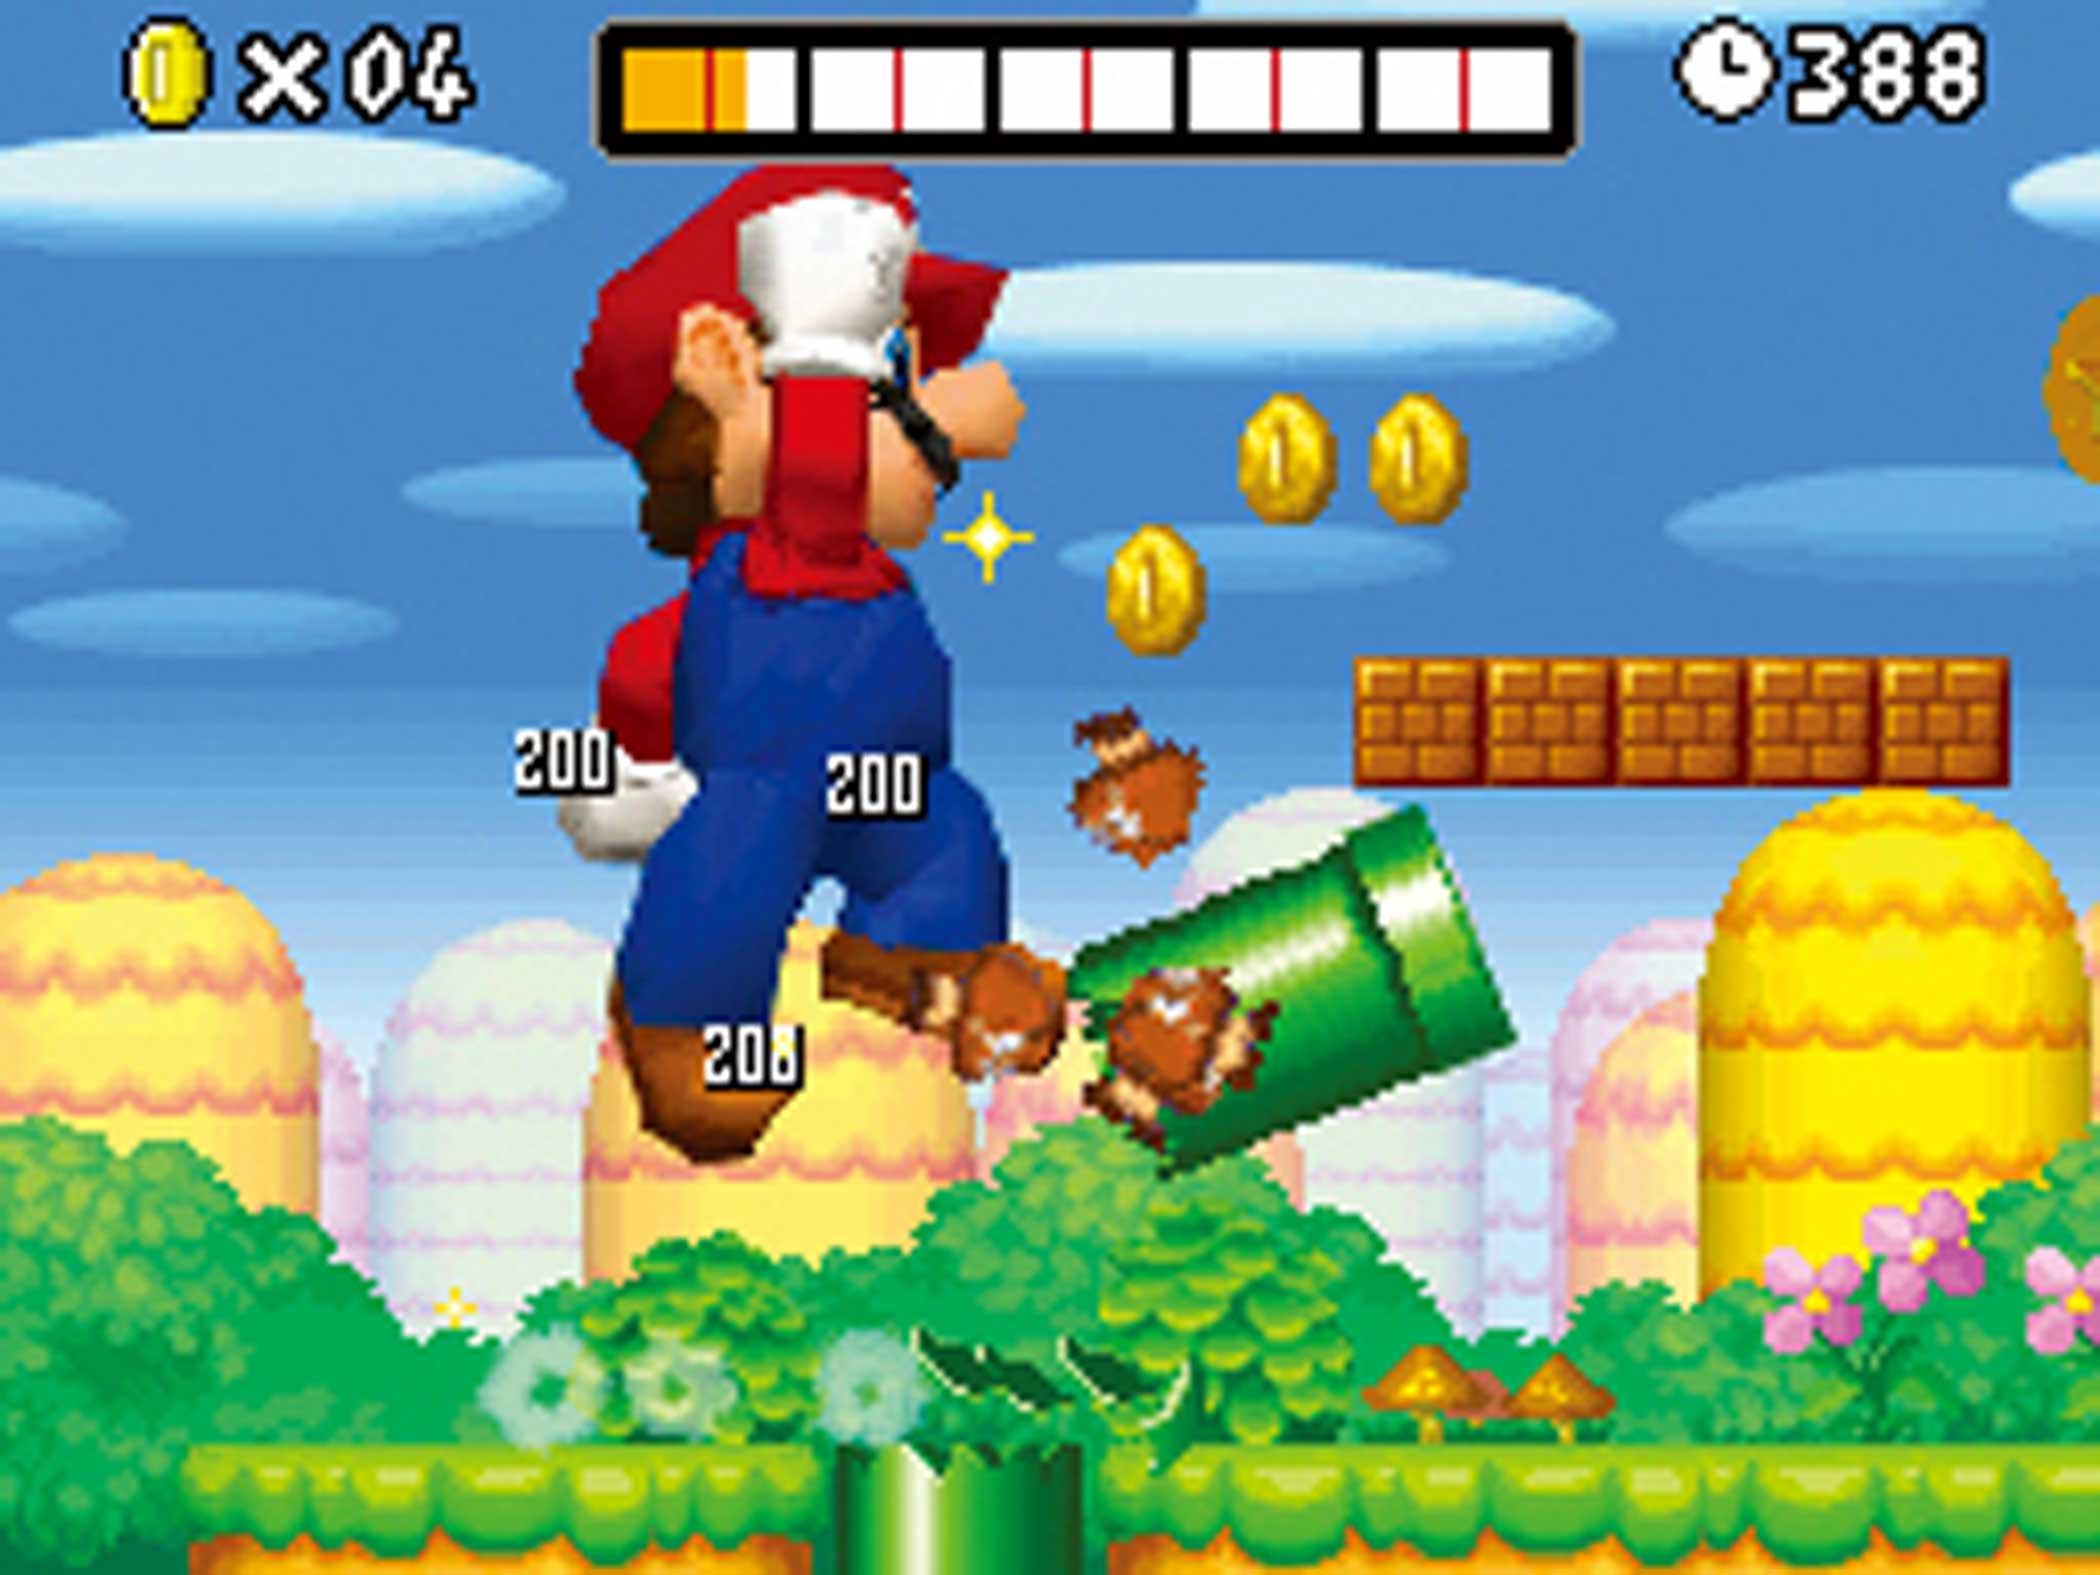 2006: New Super Mario Bros.                                                              A decade after transitioning to 3D, Mario returned to his side-scrolling roots in 2006 with Super Mario Bros.' debut appearance on Nintendo's fledgling DS handheld.